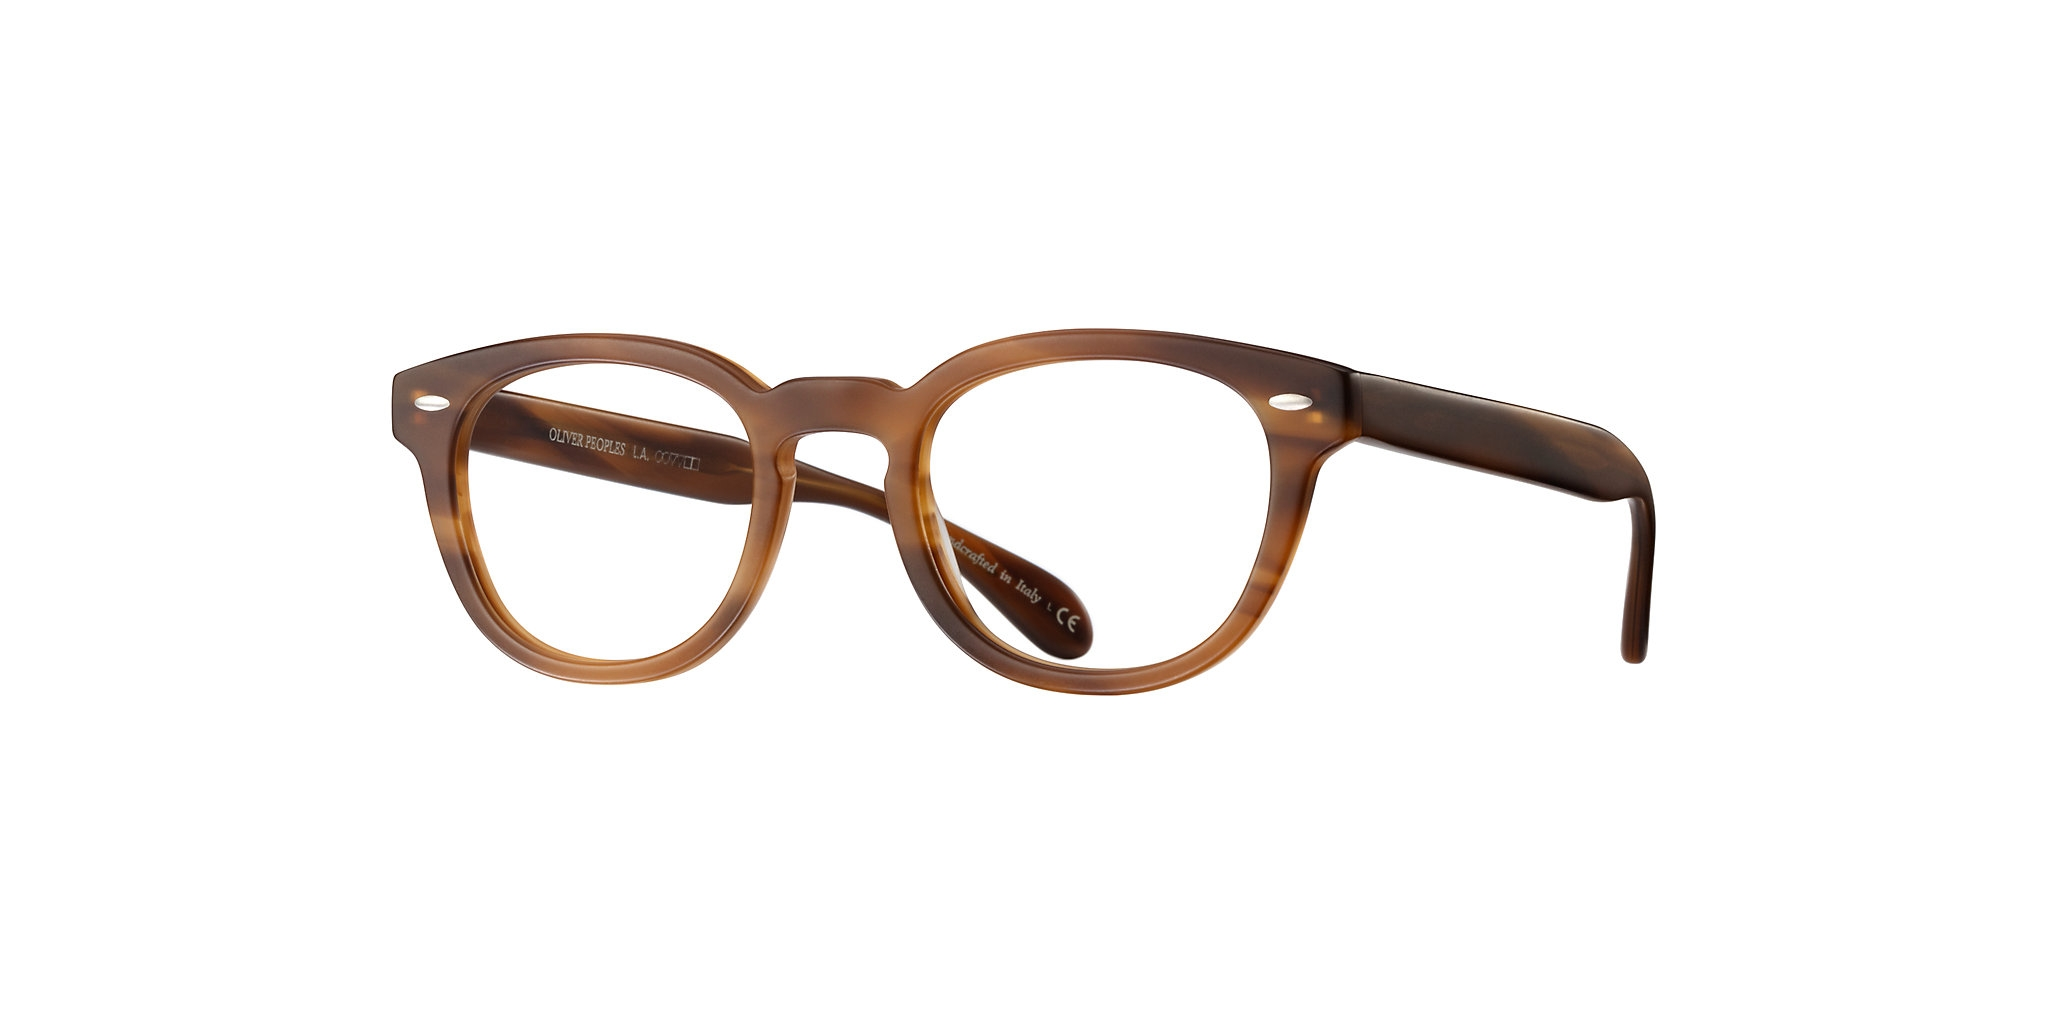 Oliver People's - Occhiale da Vista Uomo, Sheldrake, Semi-matte Raintree/Light Brown OV5036 1579 C49